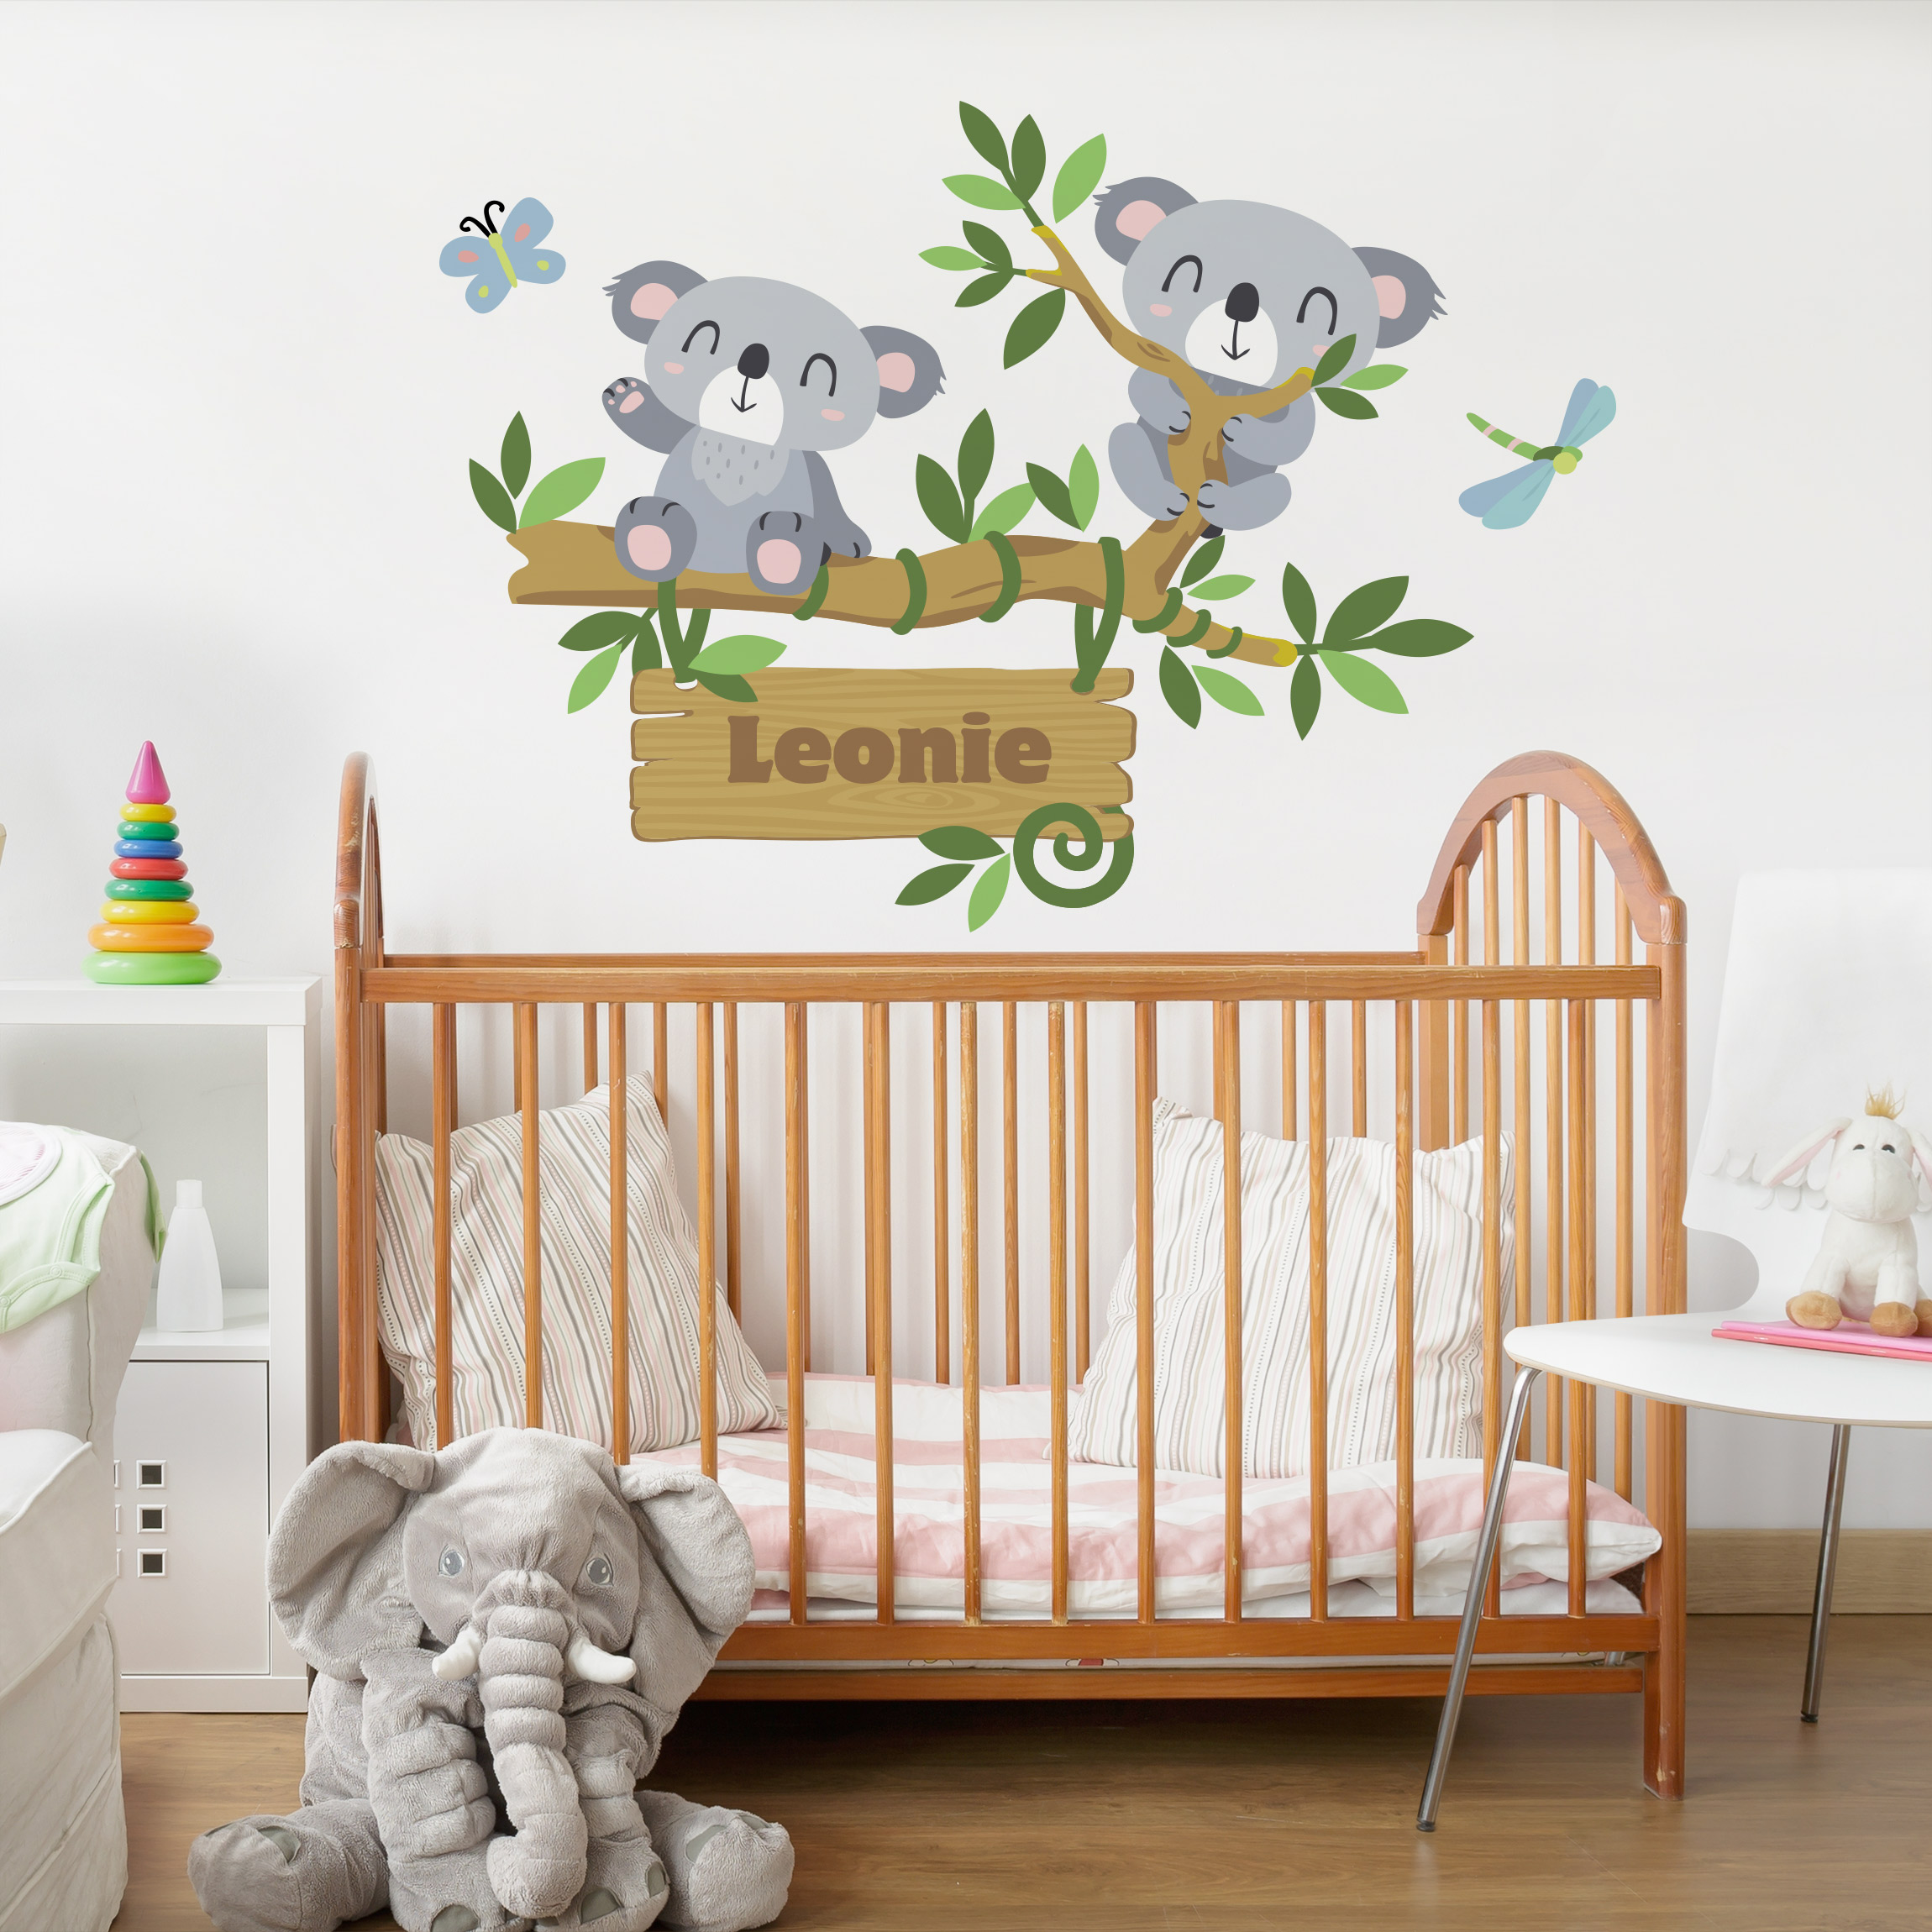 wandtattoo namen kinderzimmer koala baum wunschtext. Black Bedroom Furniture Sets. Home Design Ideas